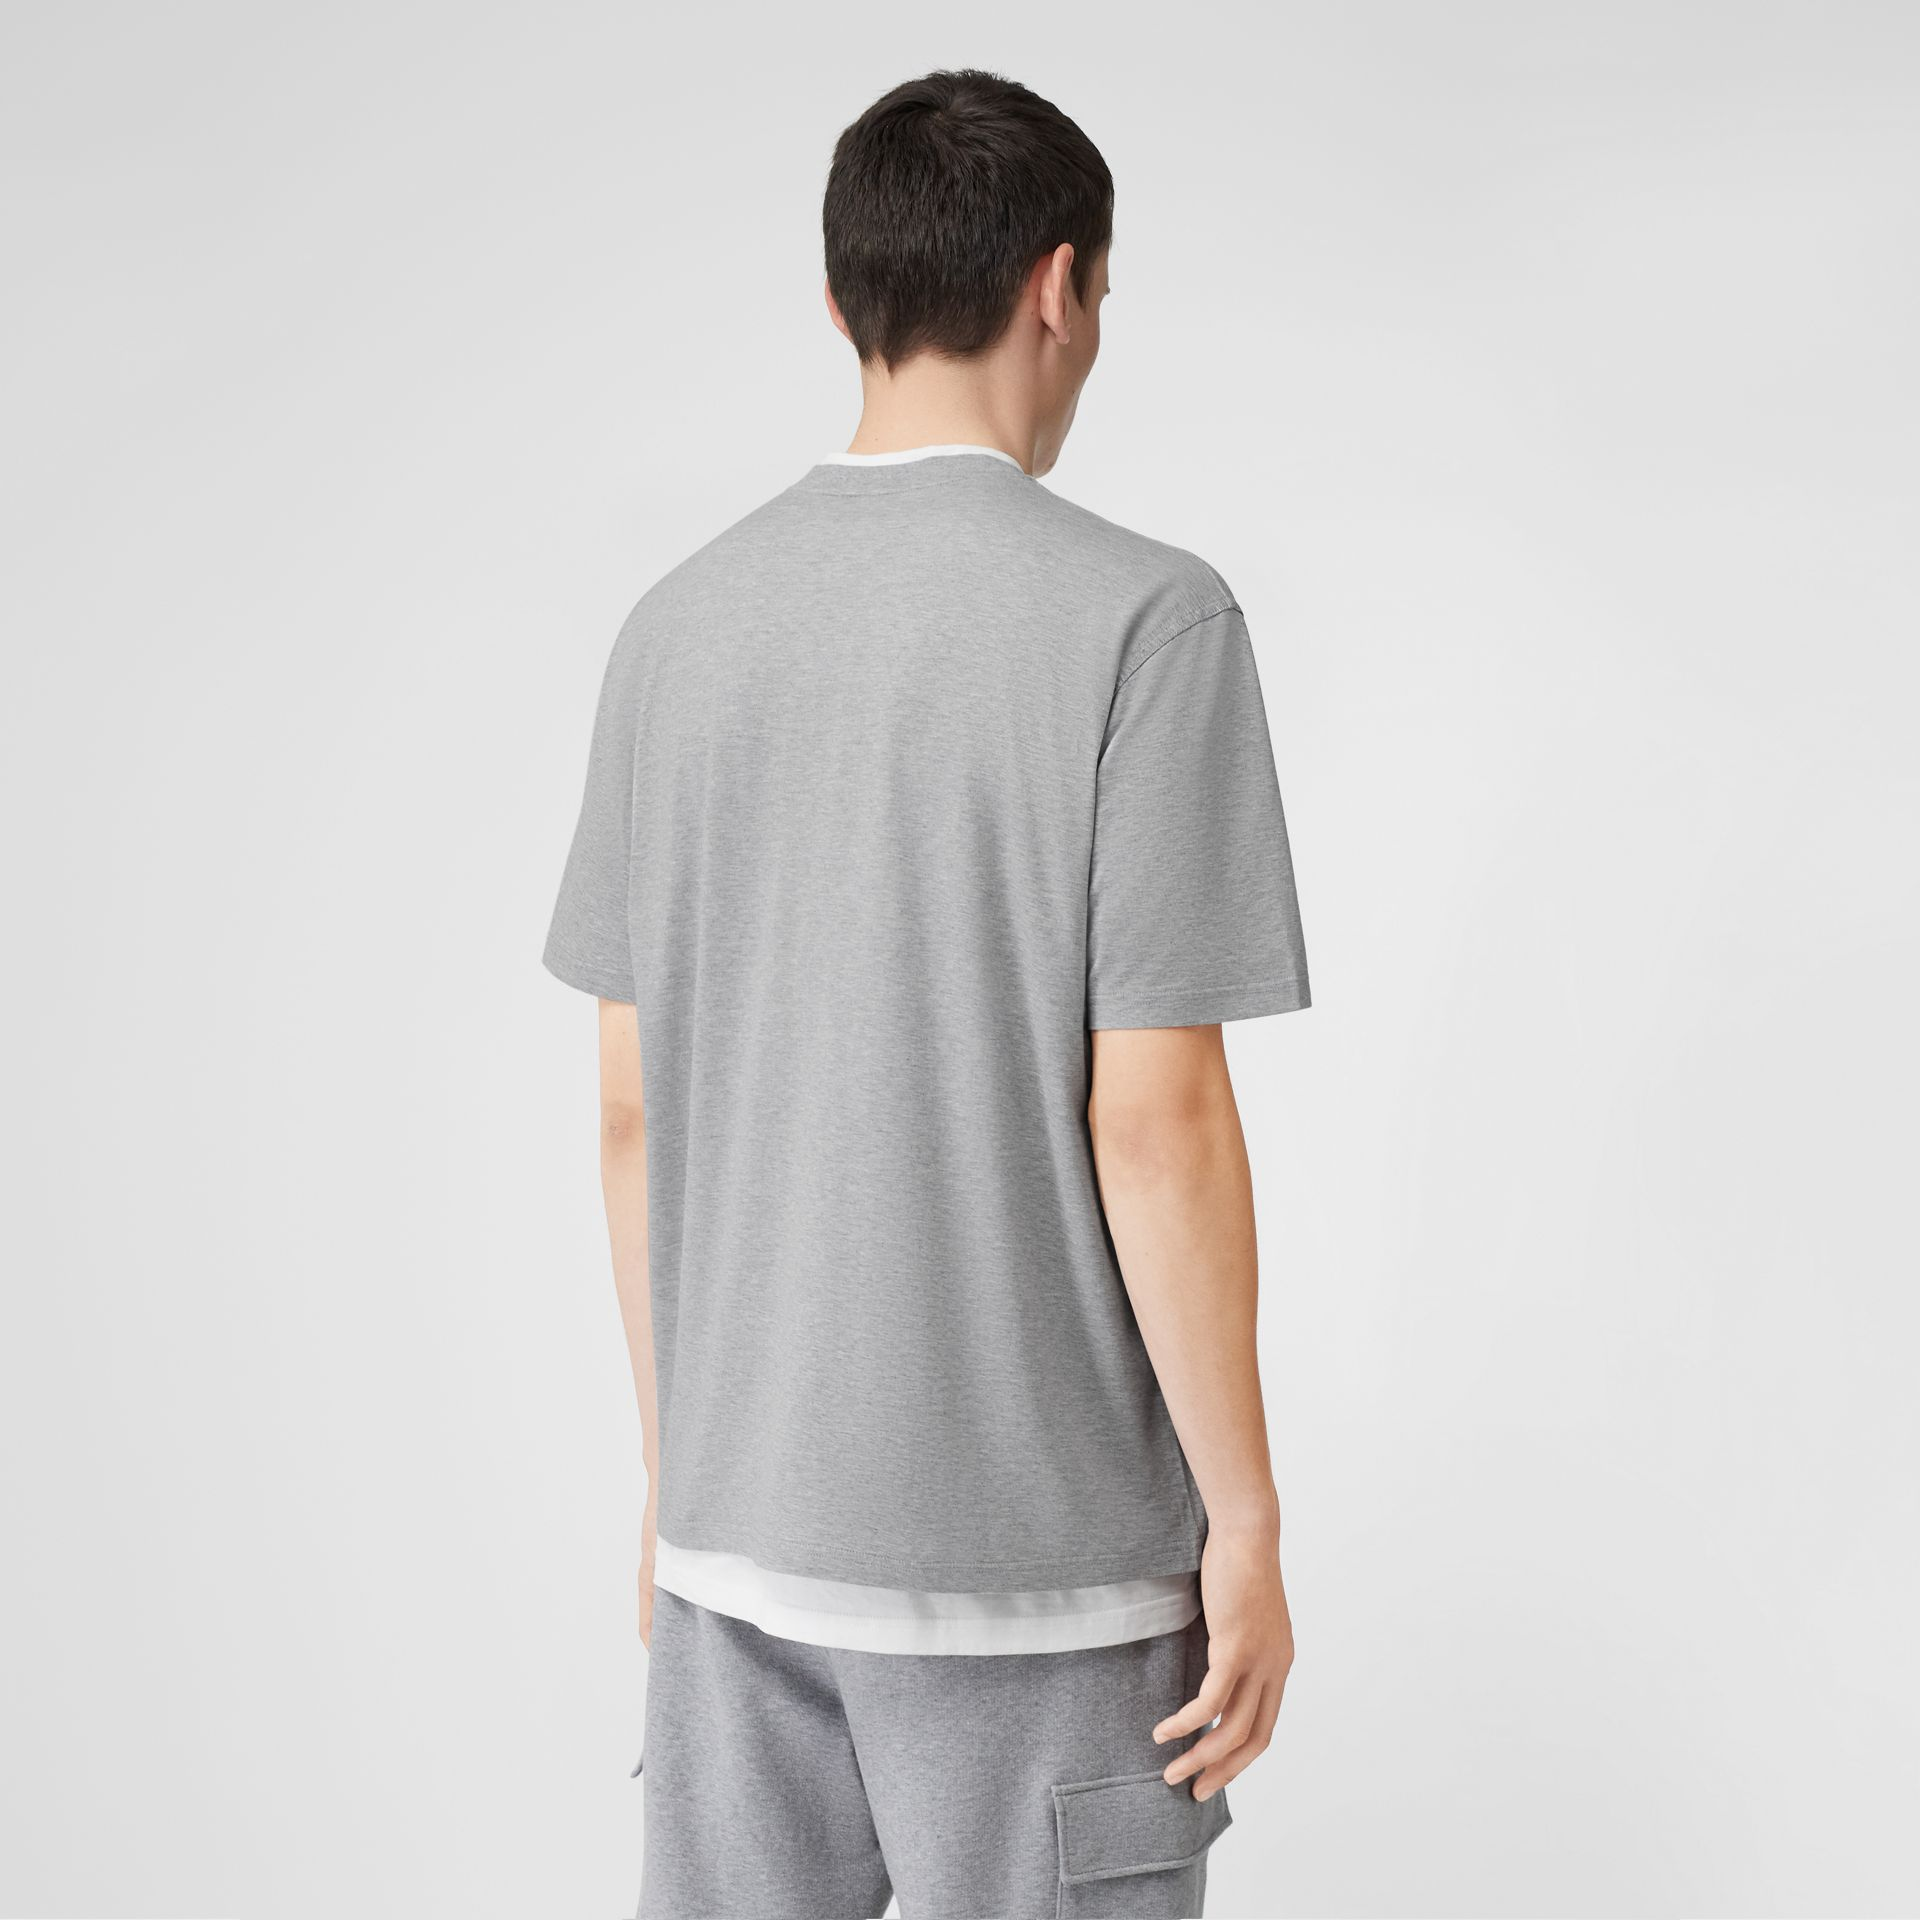 Monogram Motif Cotton Oversized T-shirt in Pale Grey Melange - Men | Burberry - gallery image 2